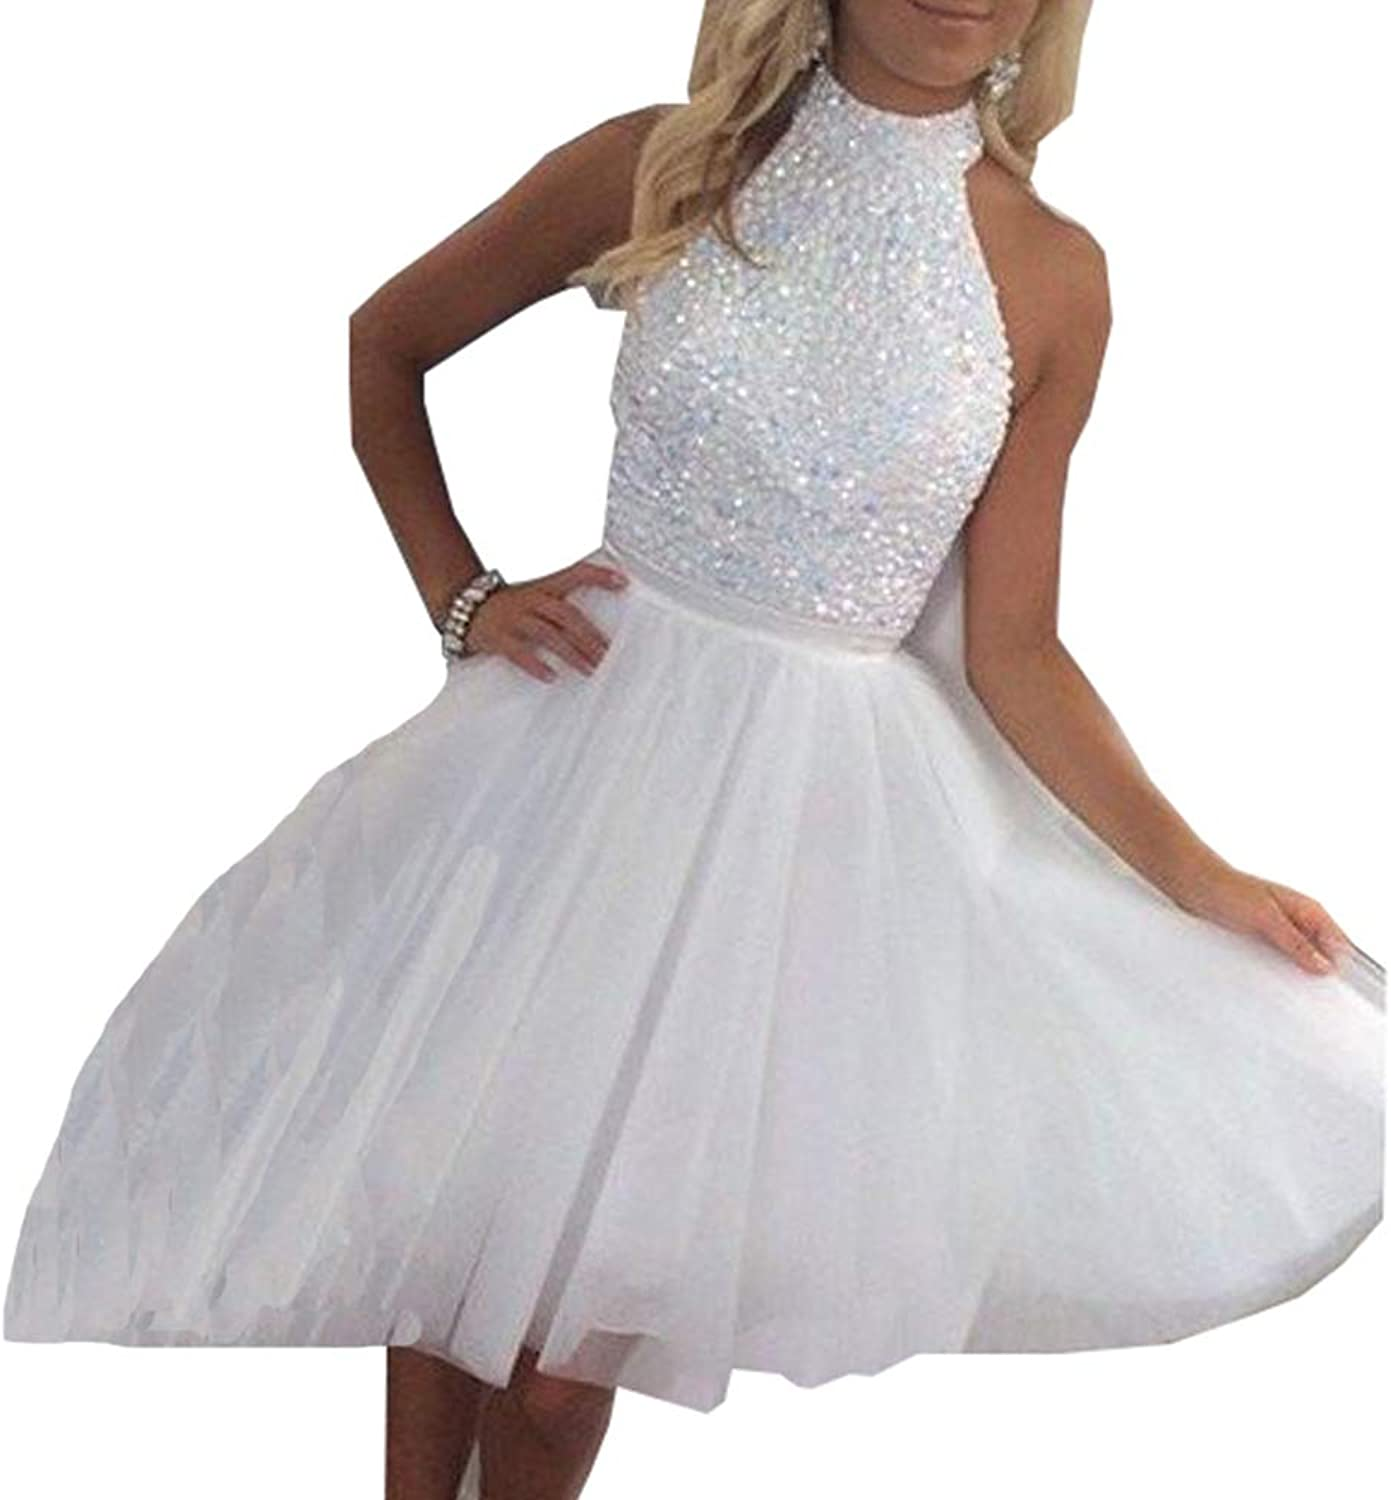 Beautydress Beaded Short Keyhole Back Prom Dress High Neck Homecoming Party Dresses BP126